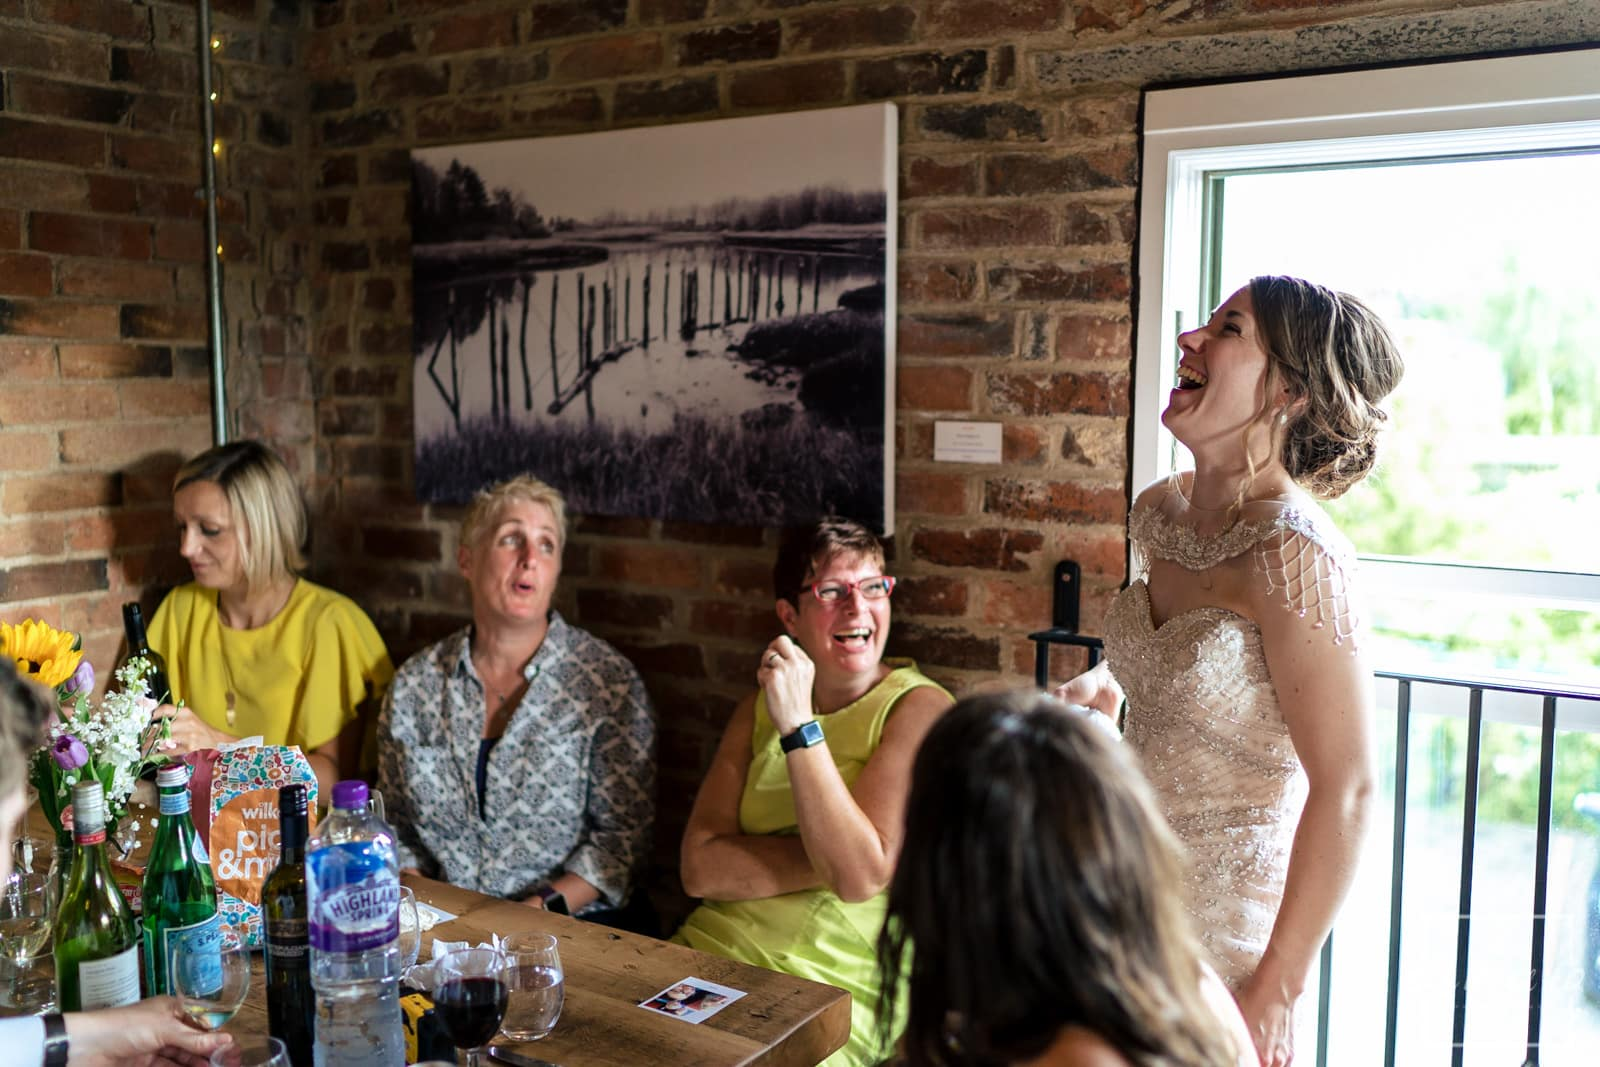 Leicester Wedding Photography + Leicester Wedding Photographer + Humanist Wedding Photographer